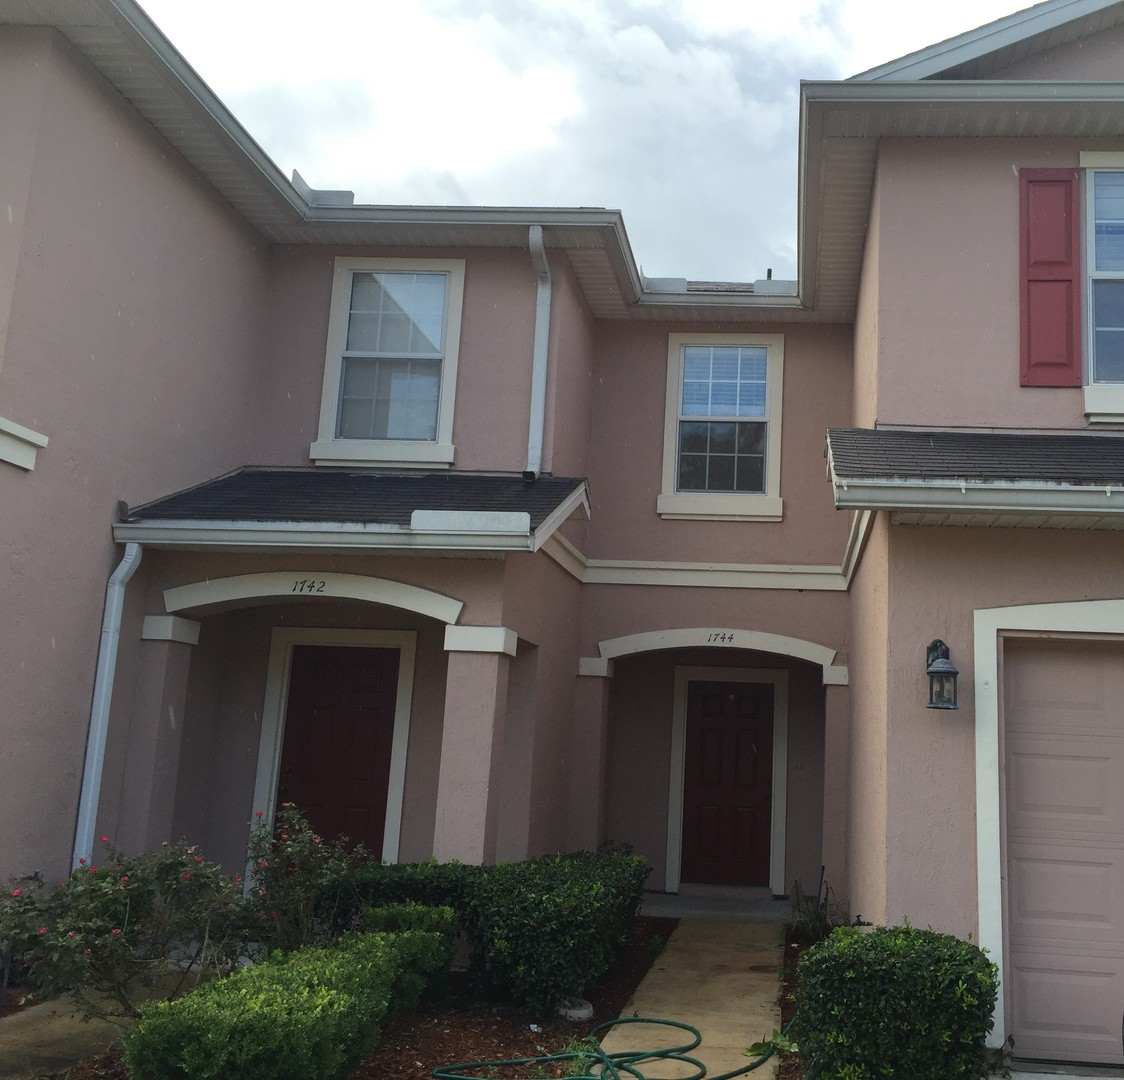 Apartments And Houses For Rent Near Me In Turtle Creek